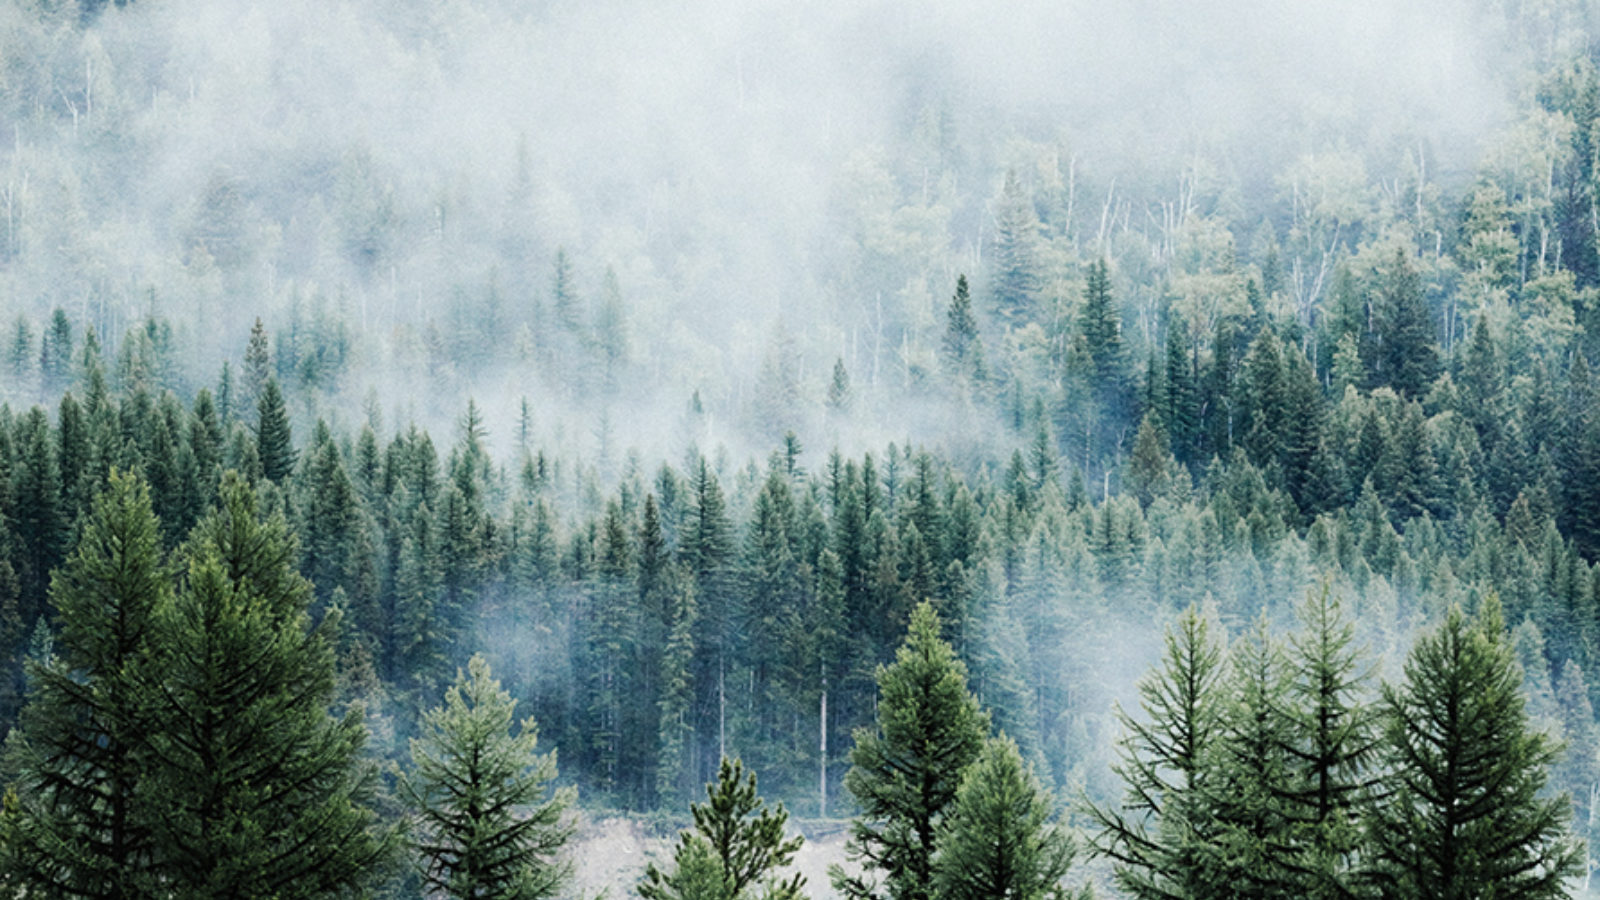 A pine forest surrounded by fog